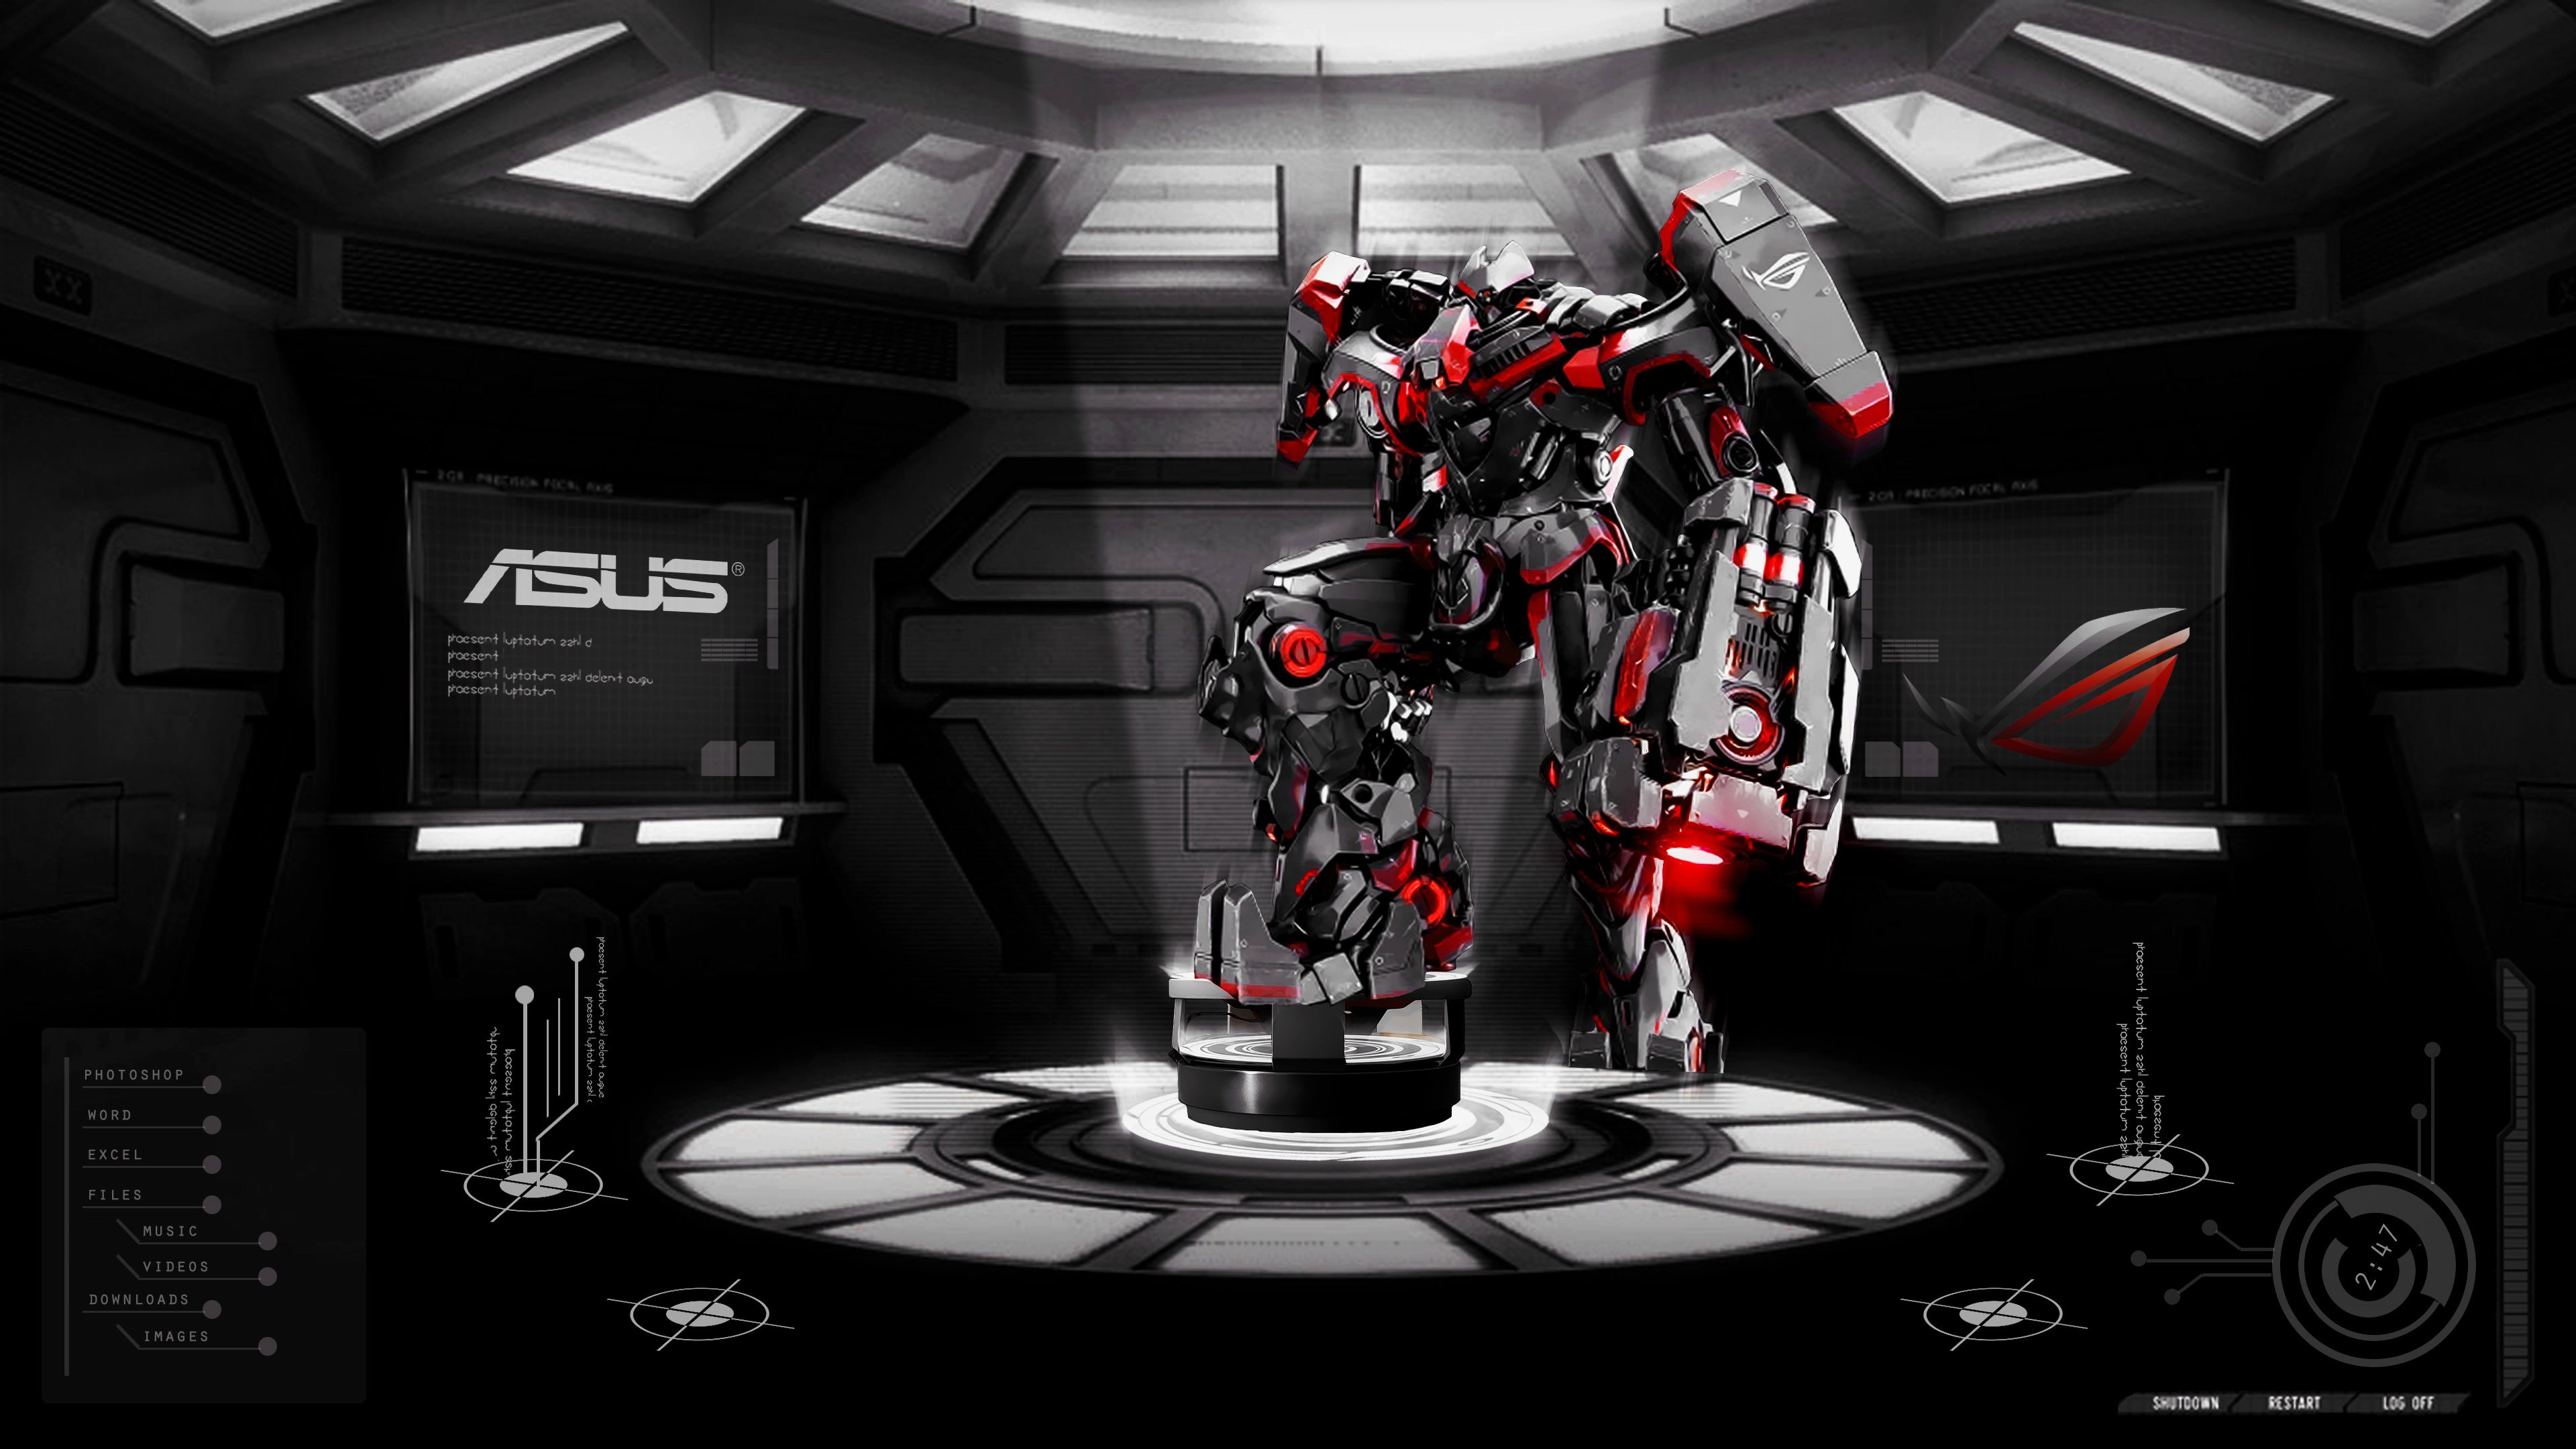 ASUS PB287Q Monitor 2014 4K UHD Wallpaper Competition   Page 64 3840x2160